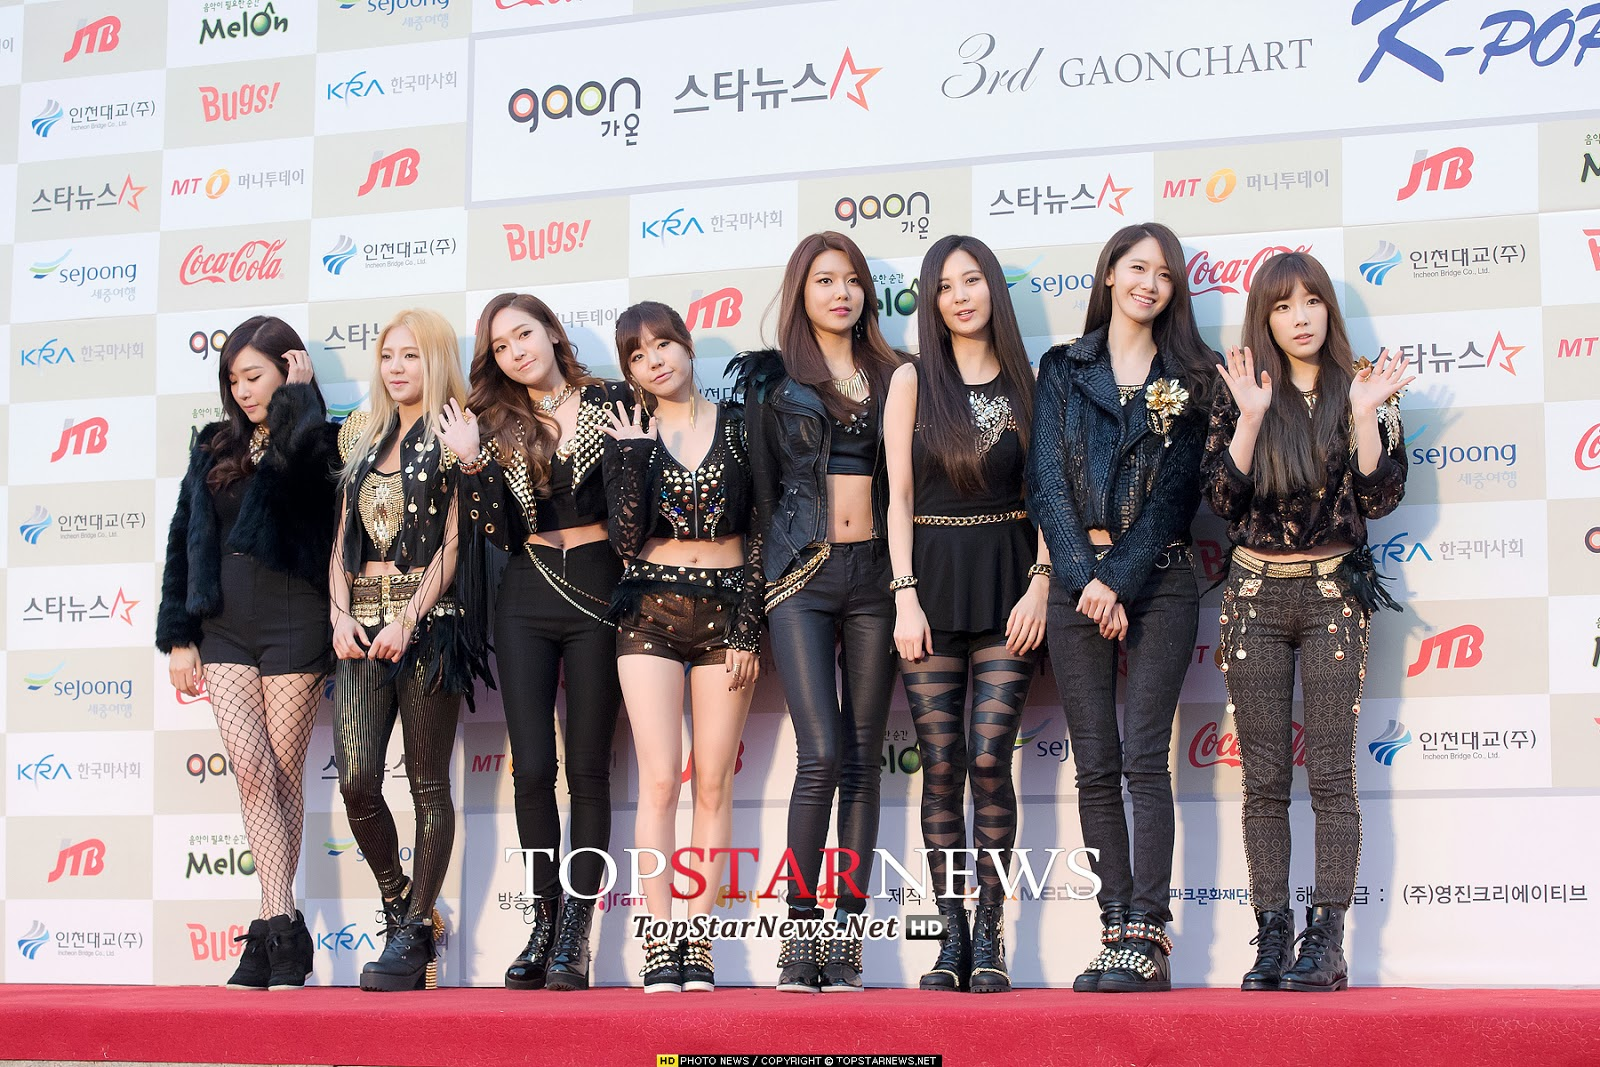 Girls' Generation 3rd Gaon Chart Awards